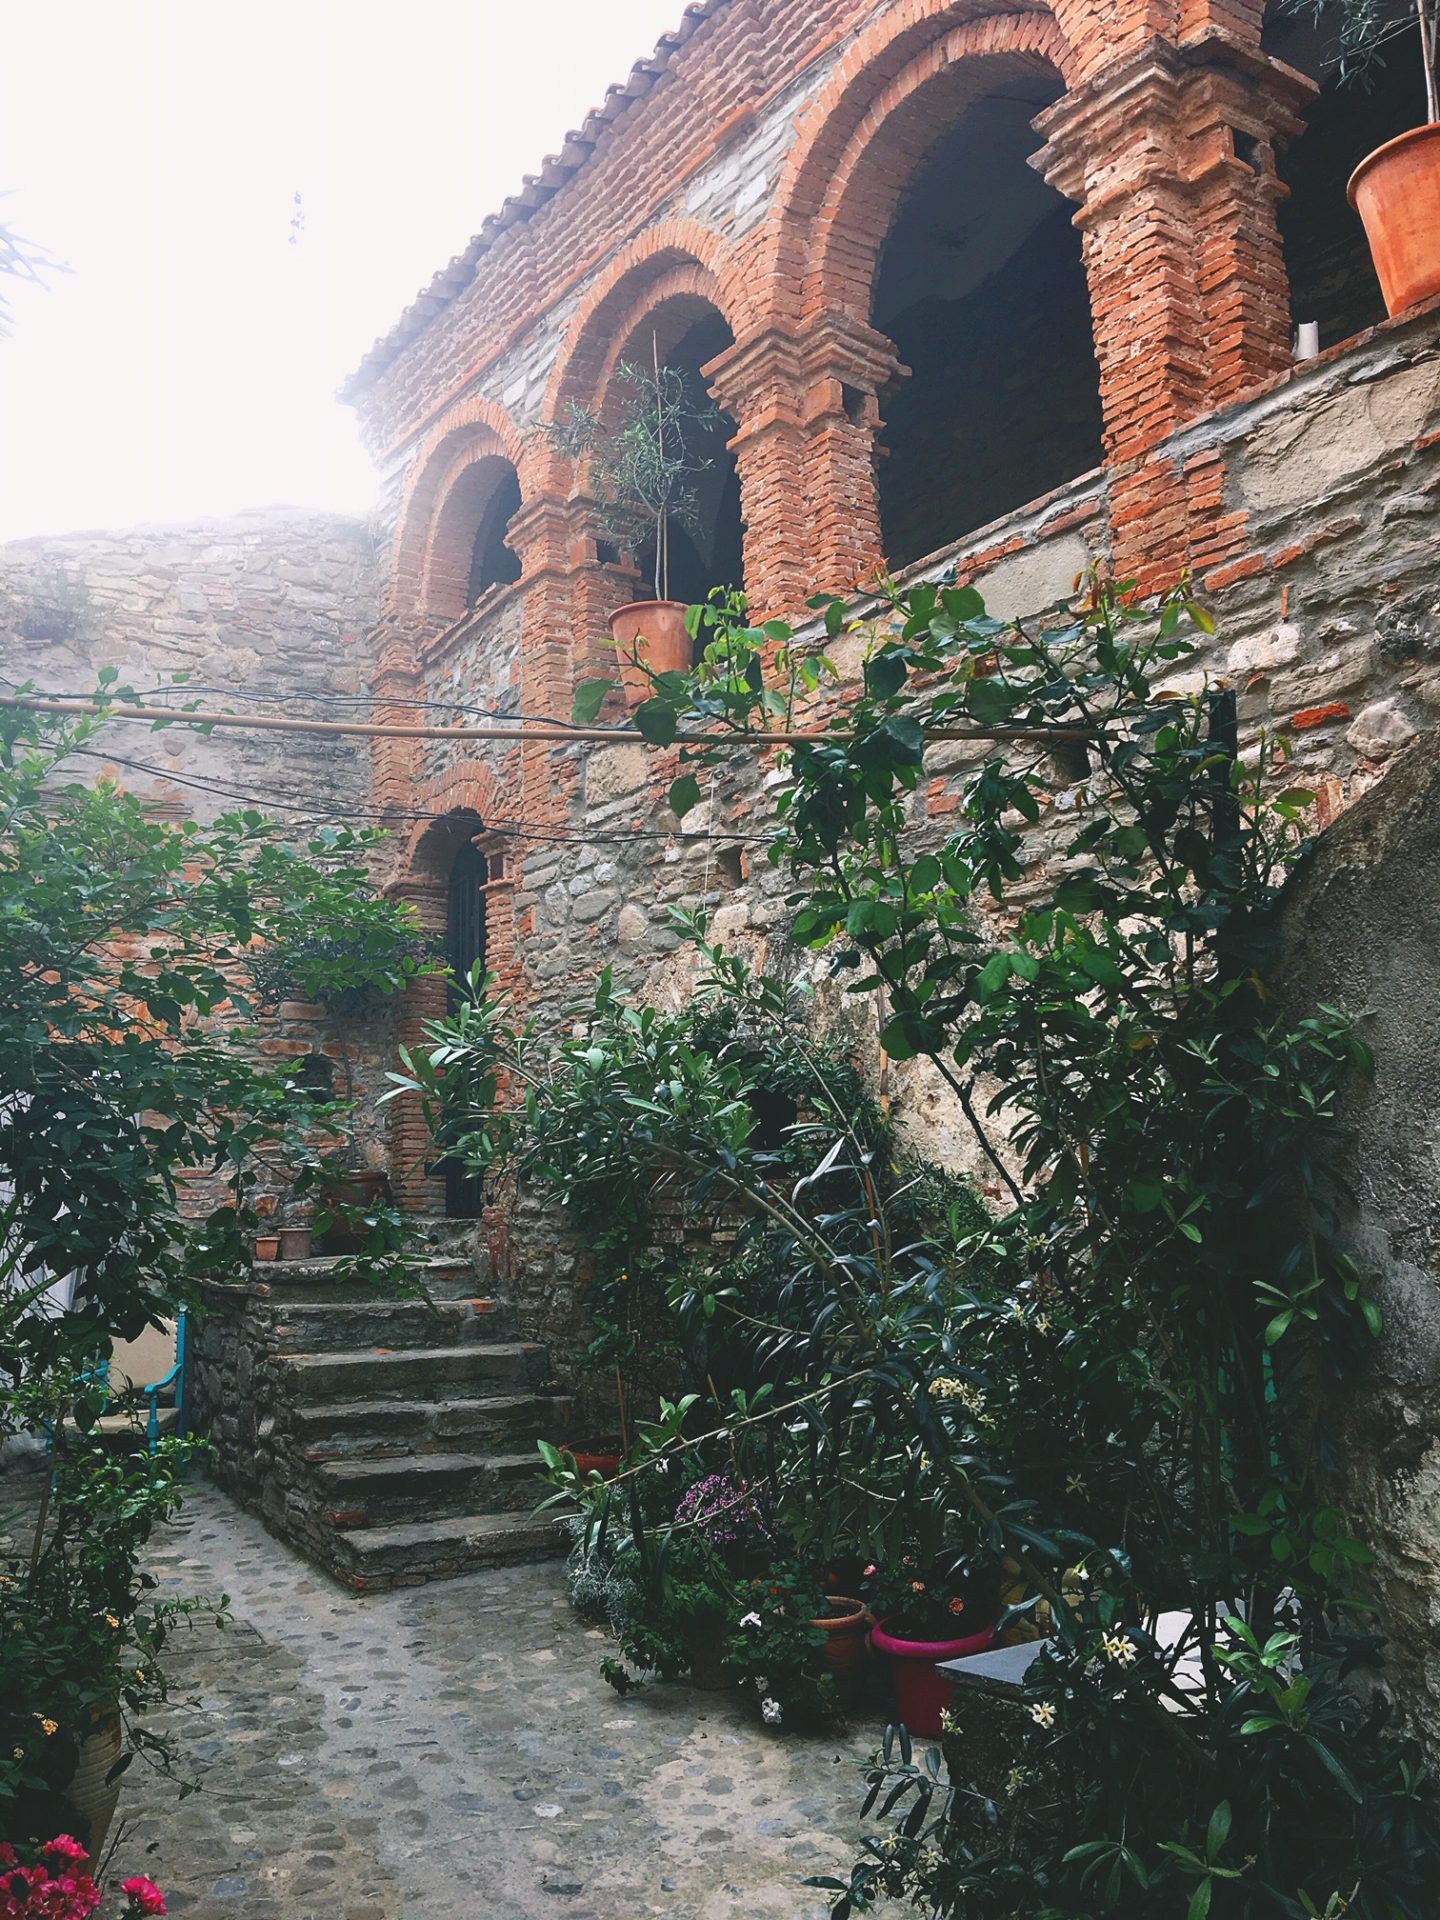 the courtyard and arab arches at the Mandarin, Orangery Retreat in Basilicata